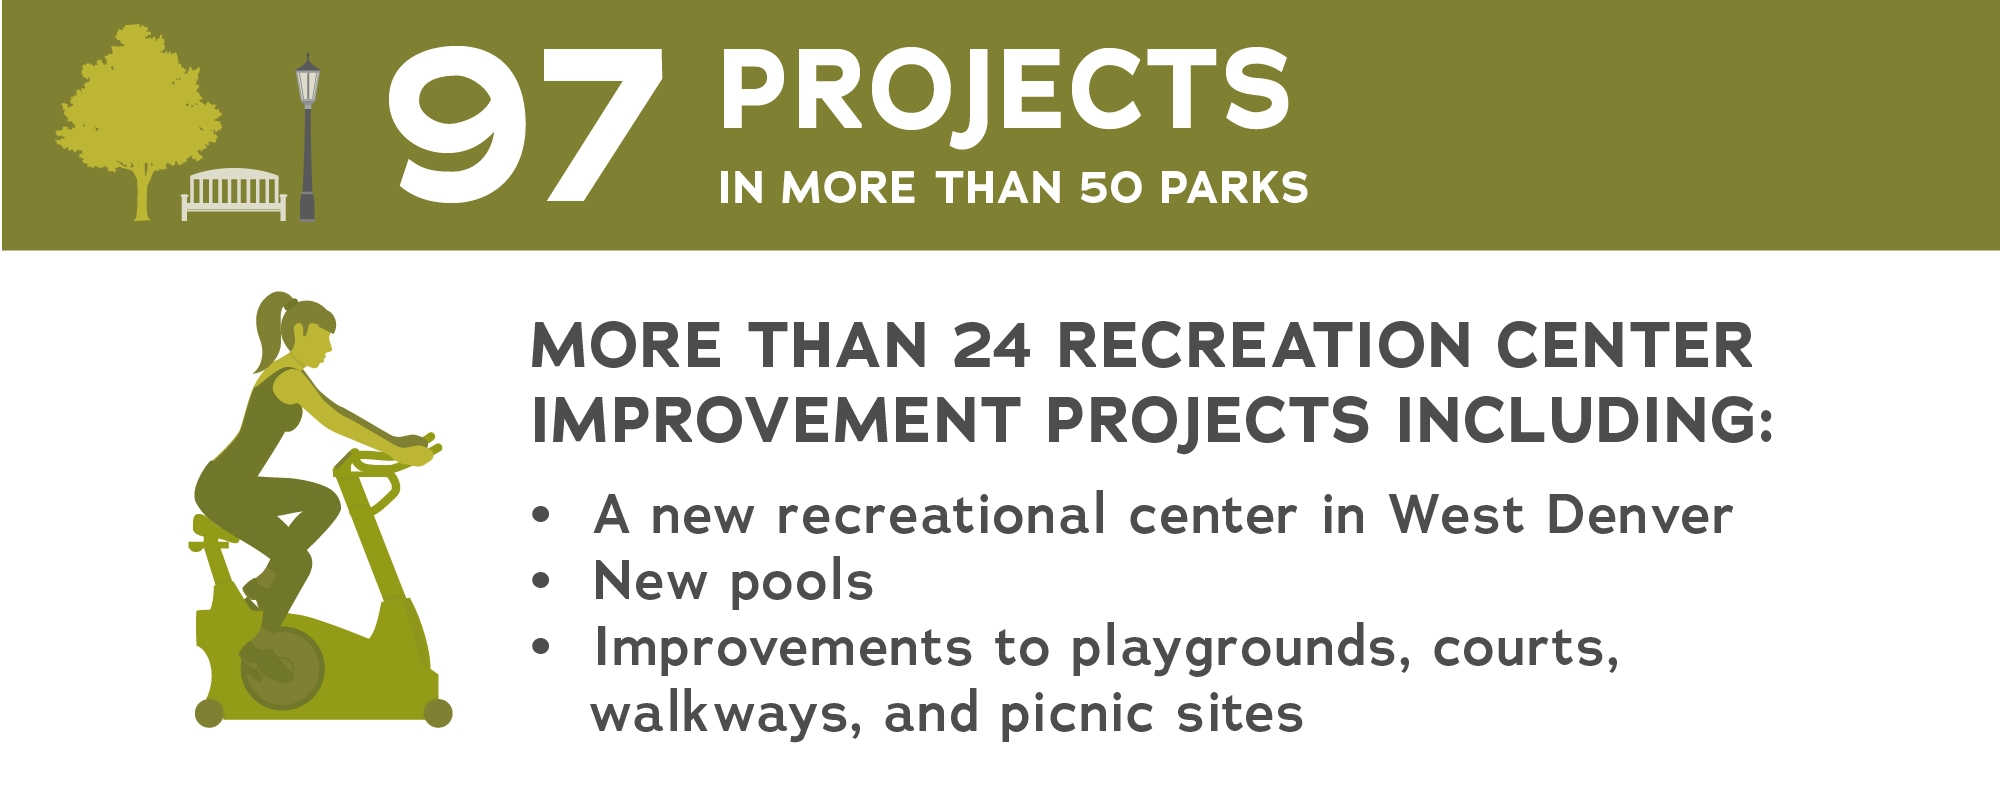 97 projects in more than 50 parks graphic